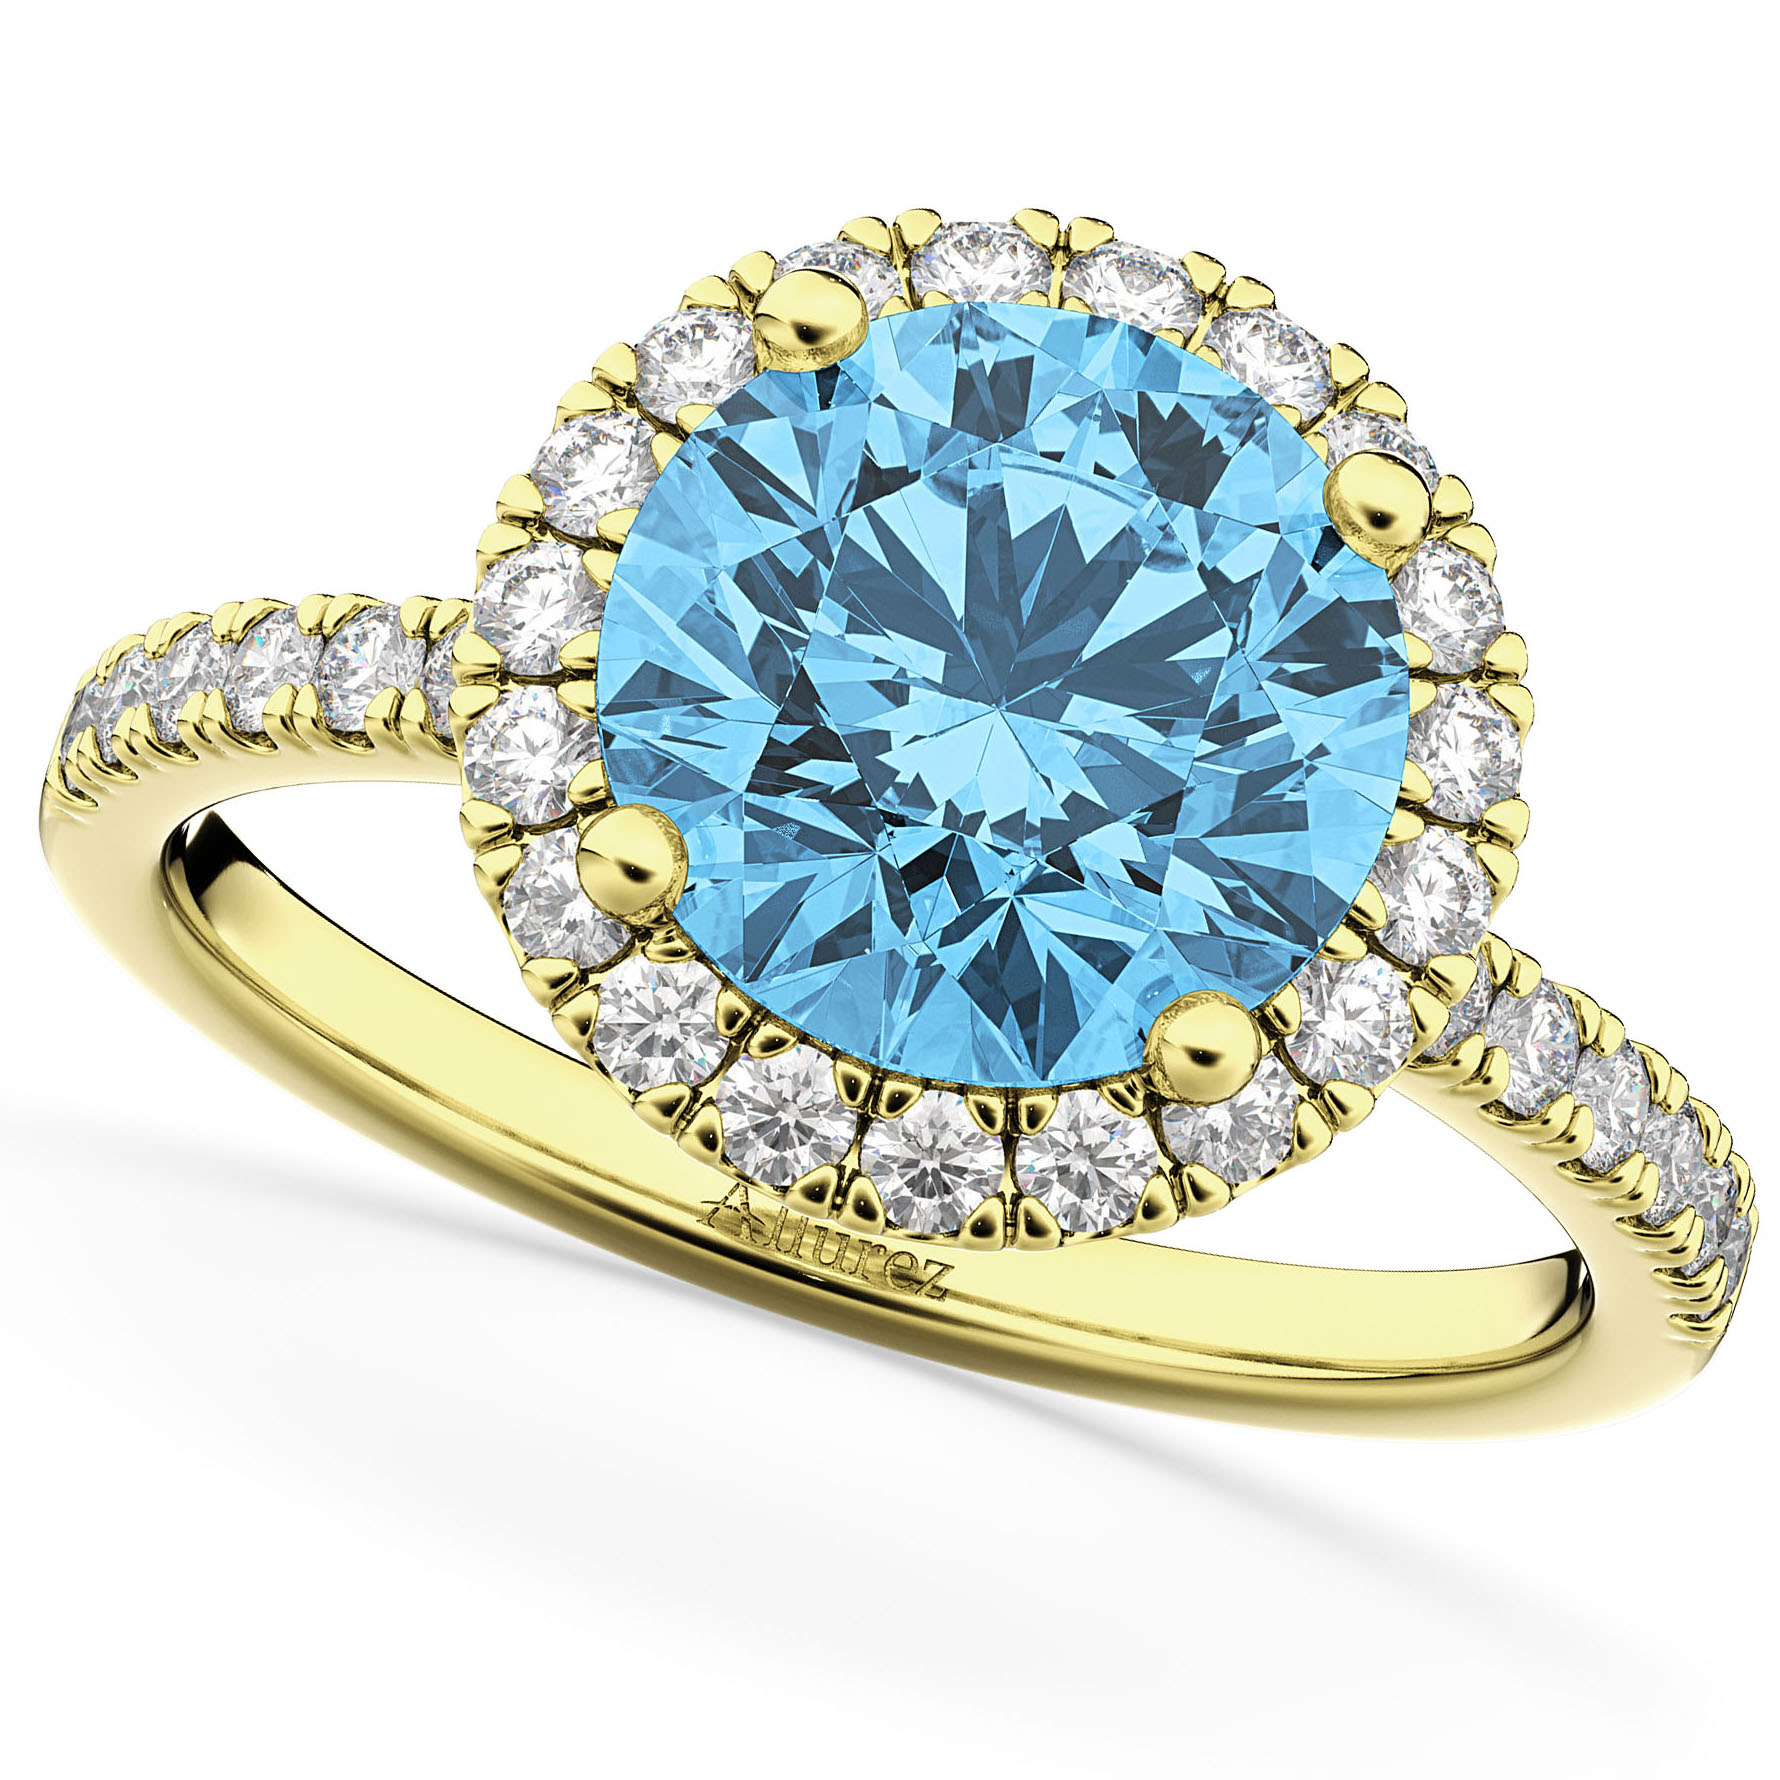 Halo Blue Topaz & Diamond Engagement Ring 14K Yellow Gold 3.00ct